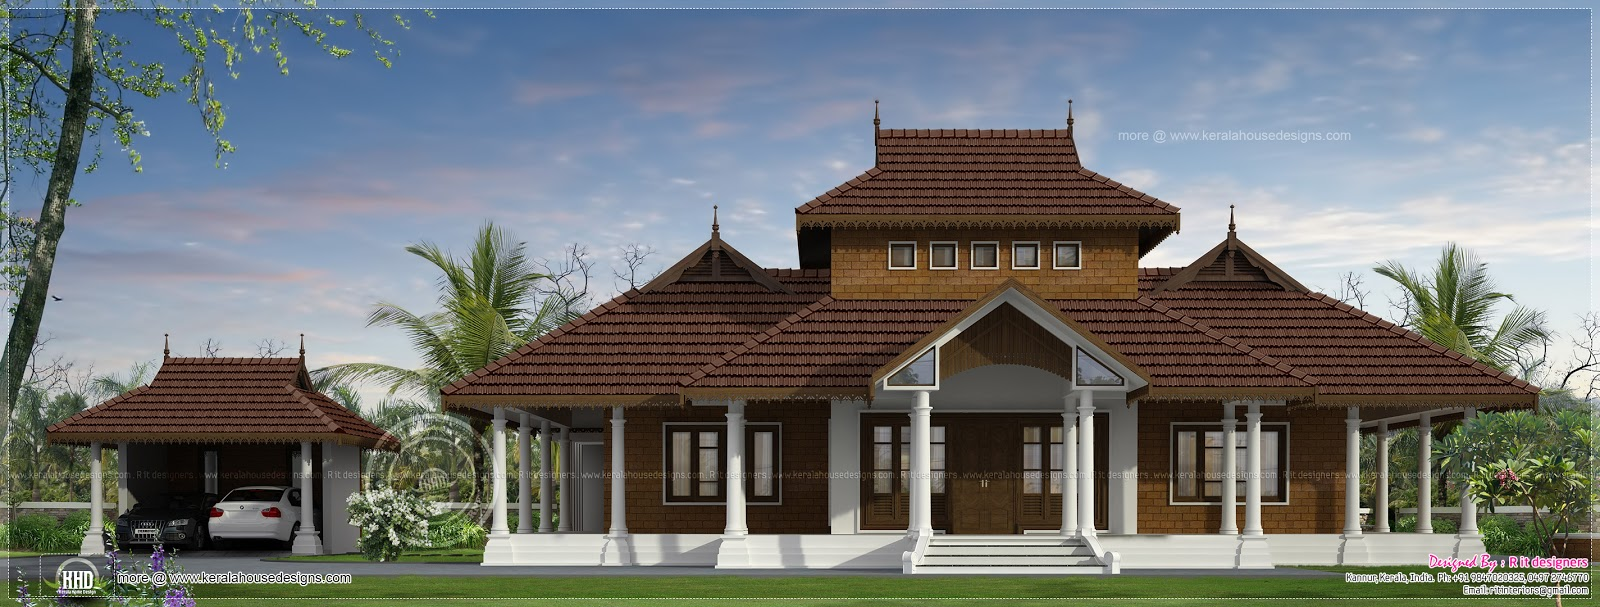 Traditional Kerala villa exterior in 3070 sqft Newbrough